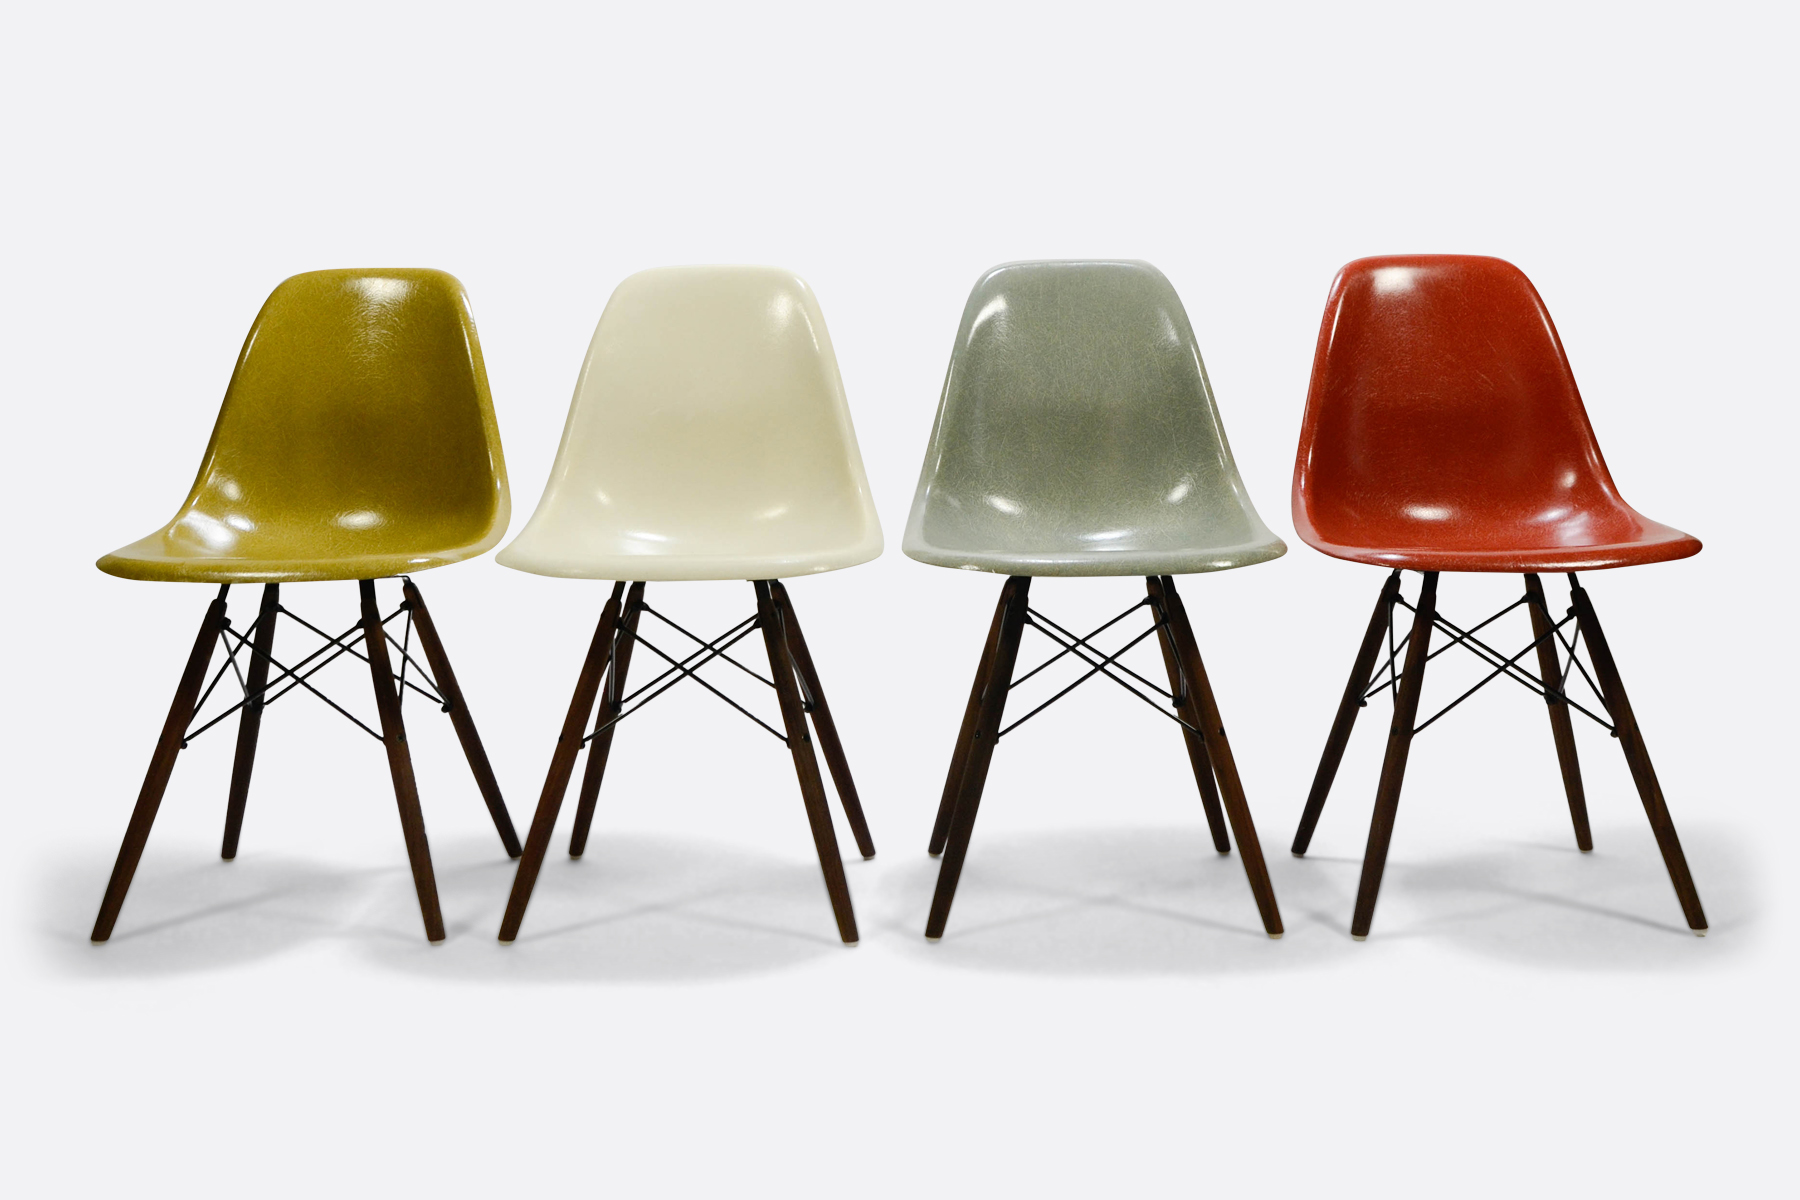 Eames DSW set of 4 Mustard - Off White - Seafoam Green - Terracotta1